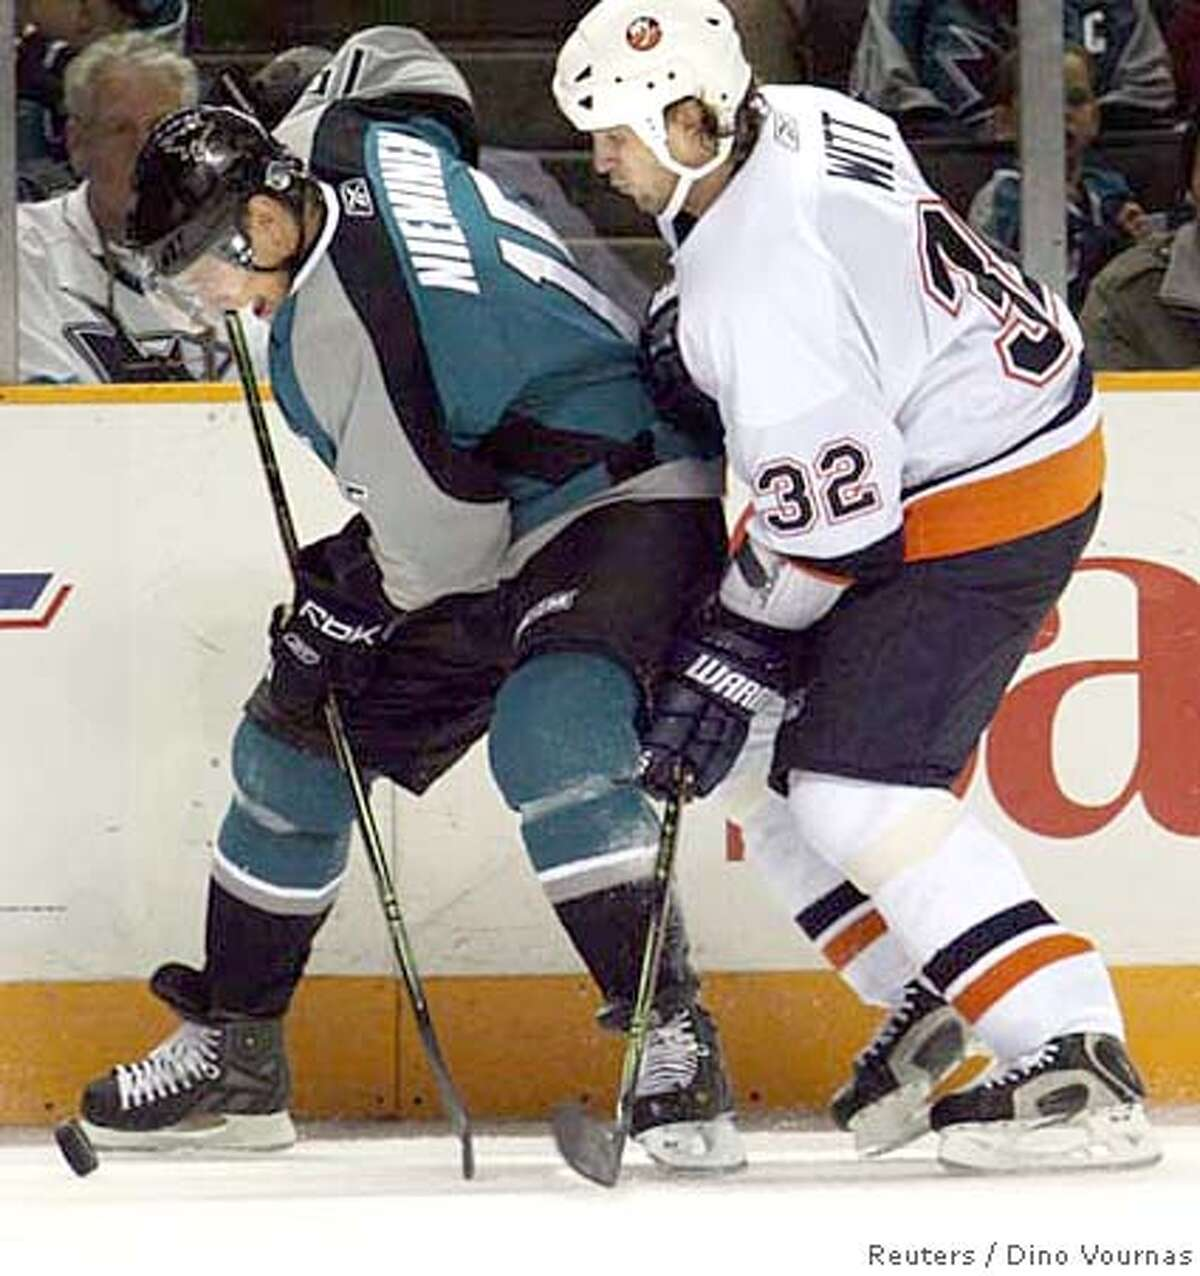 The San Jose Sharks' Ville Nieminen (L) of Finland battles Brendan Witt of the New York Islanders in the third period of an NHL hockey game in San Jose, California, October 7, 2006. REUTERS/Dino Vournas (UNITED STATES)